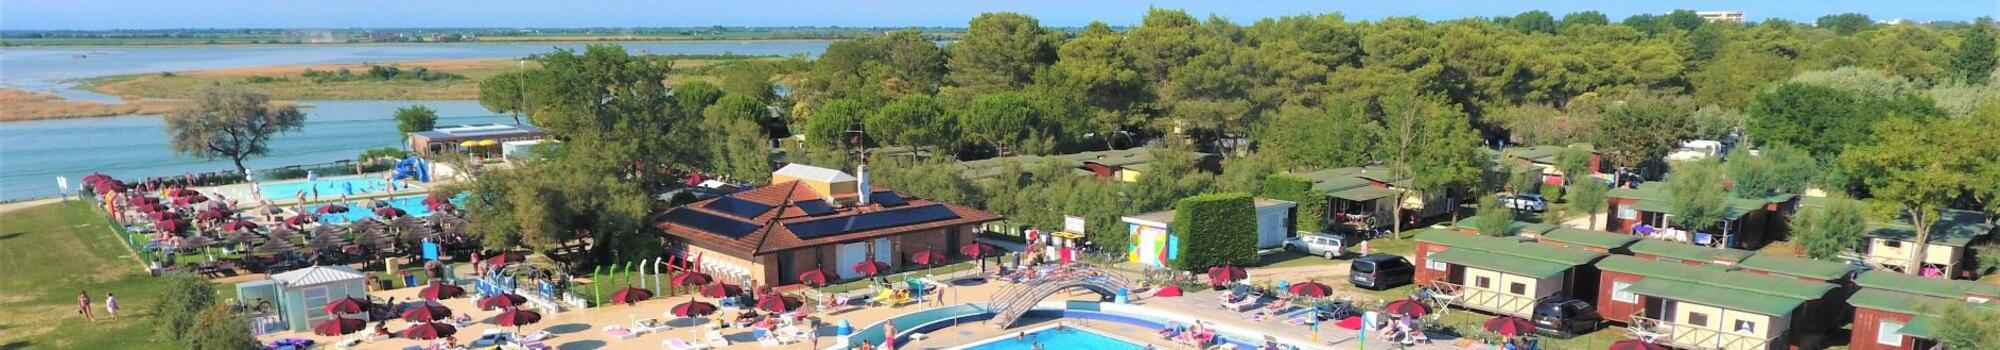 Promotion for July by camping village in Bibione with pools